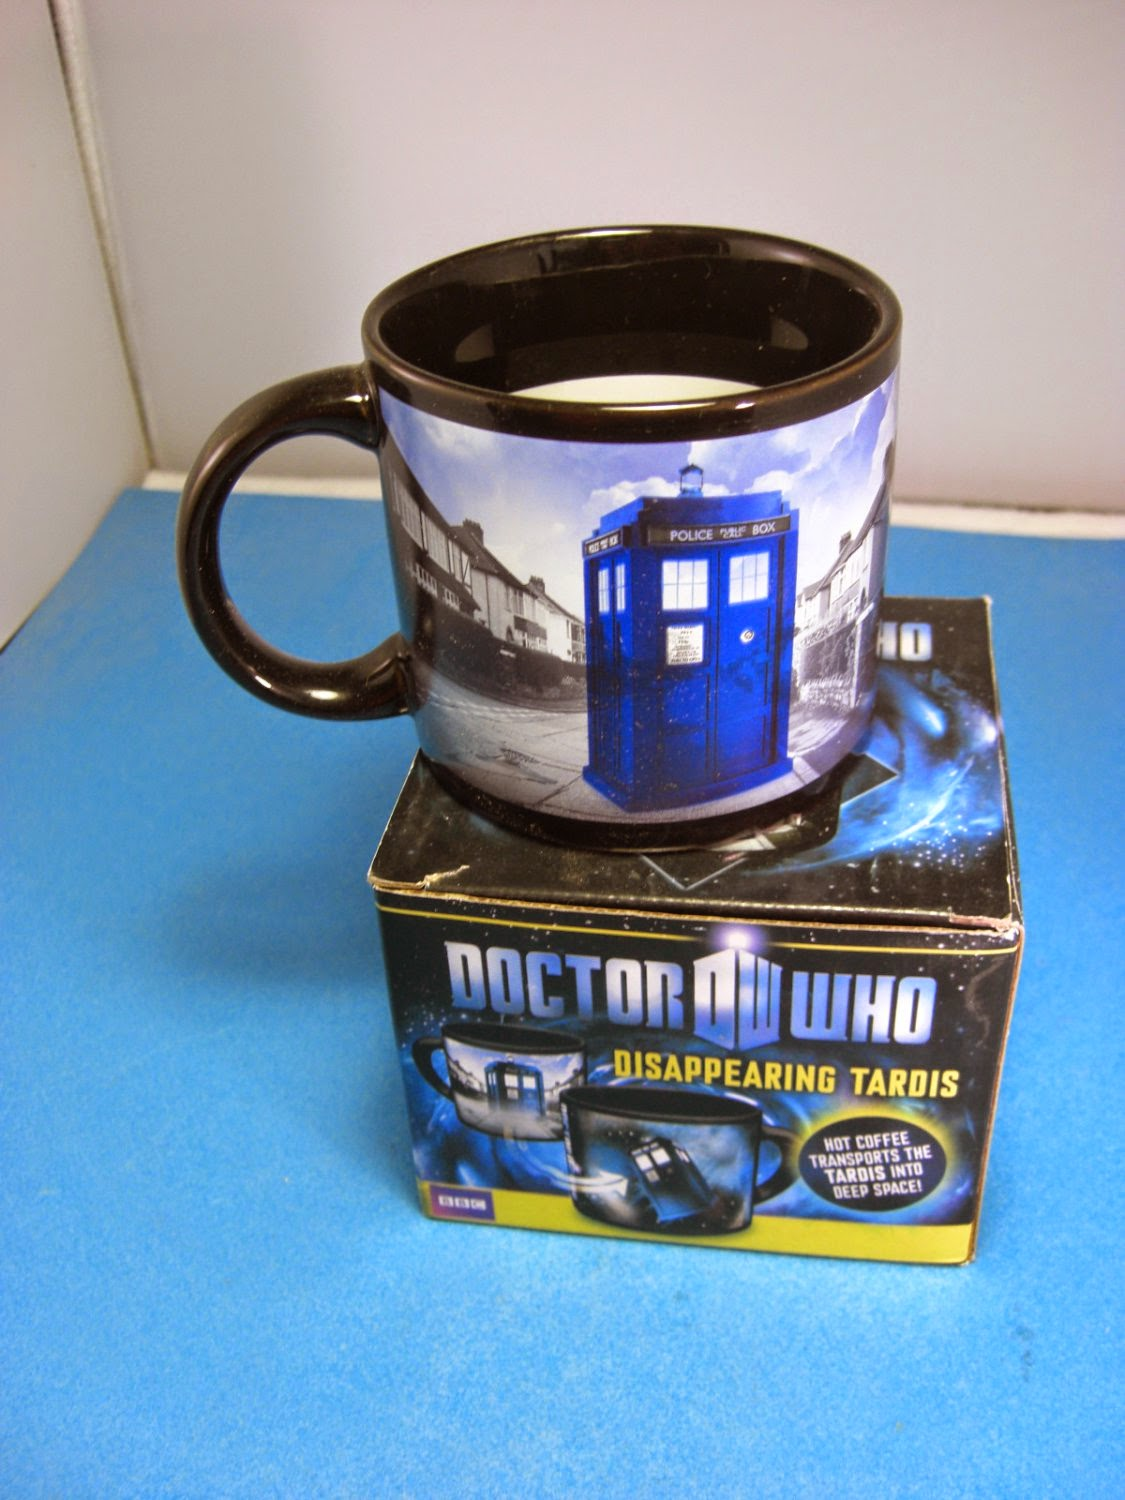 http://bargaincart.ecrater.com/p/20527953/doctor-who-disappearing-tardis-coffee?keywords=doctor